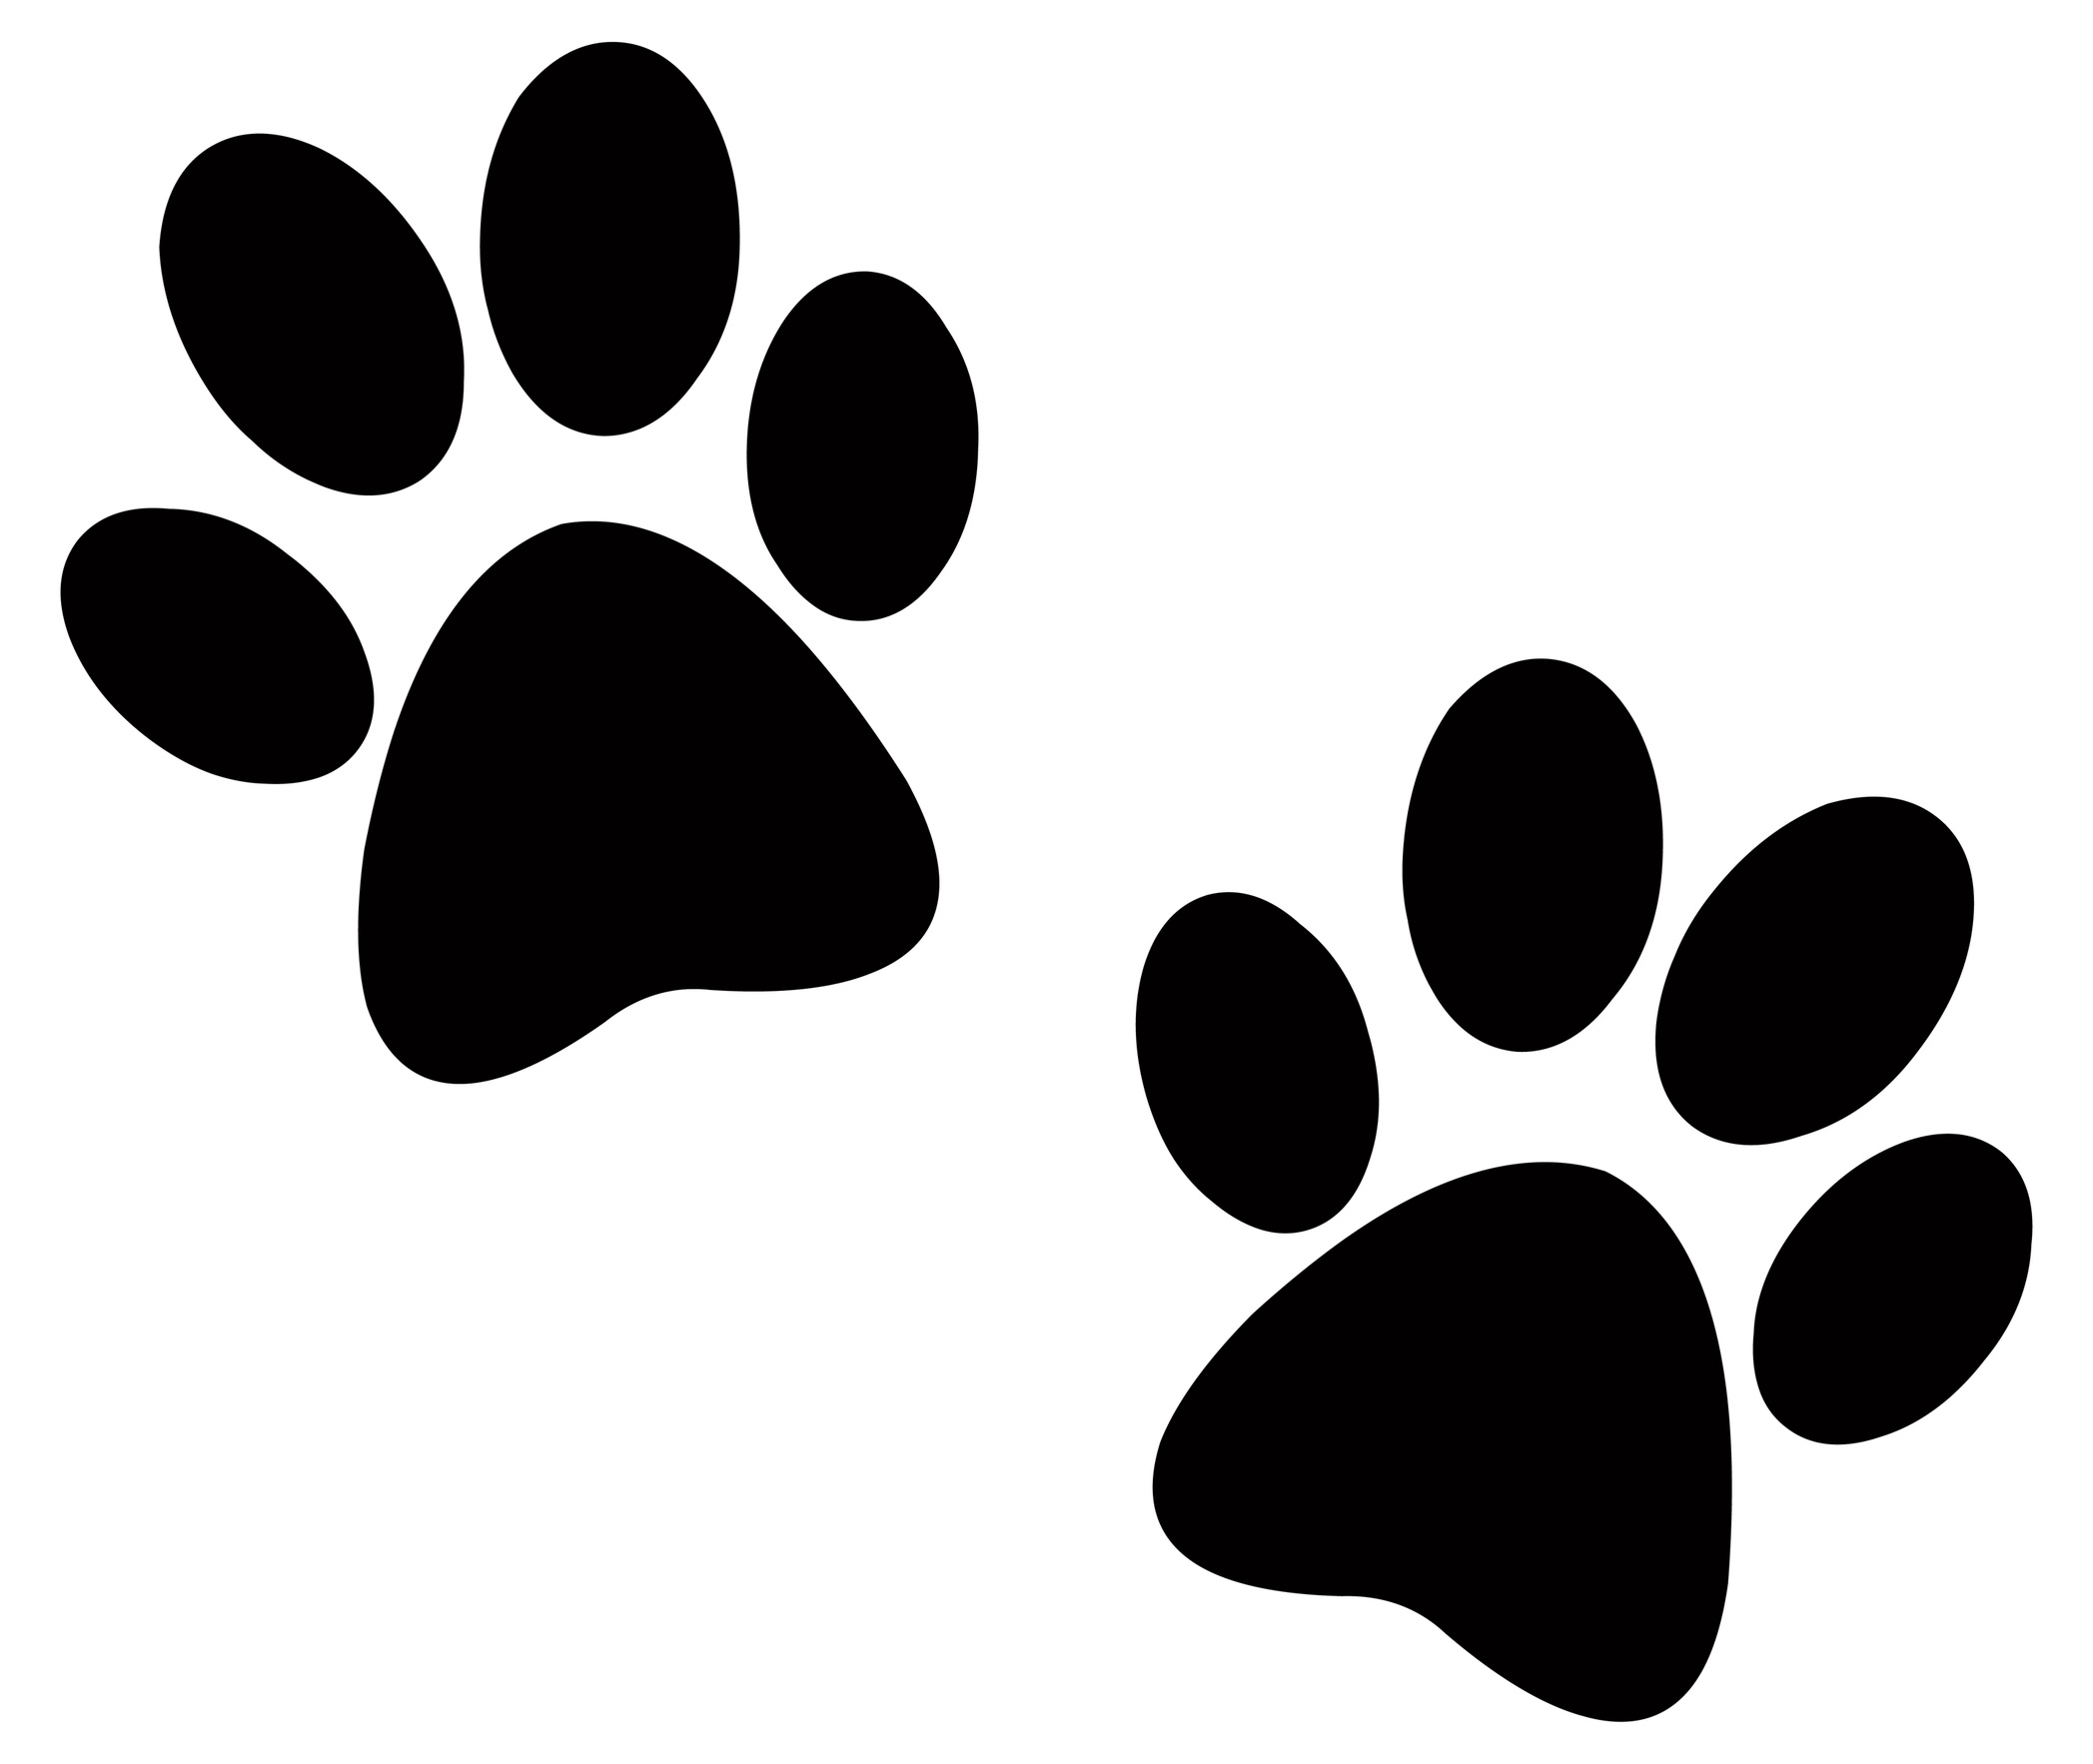 Paw Print Black And White Clipart - Clipart Kid